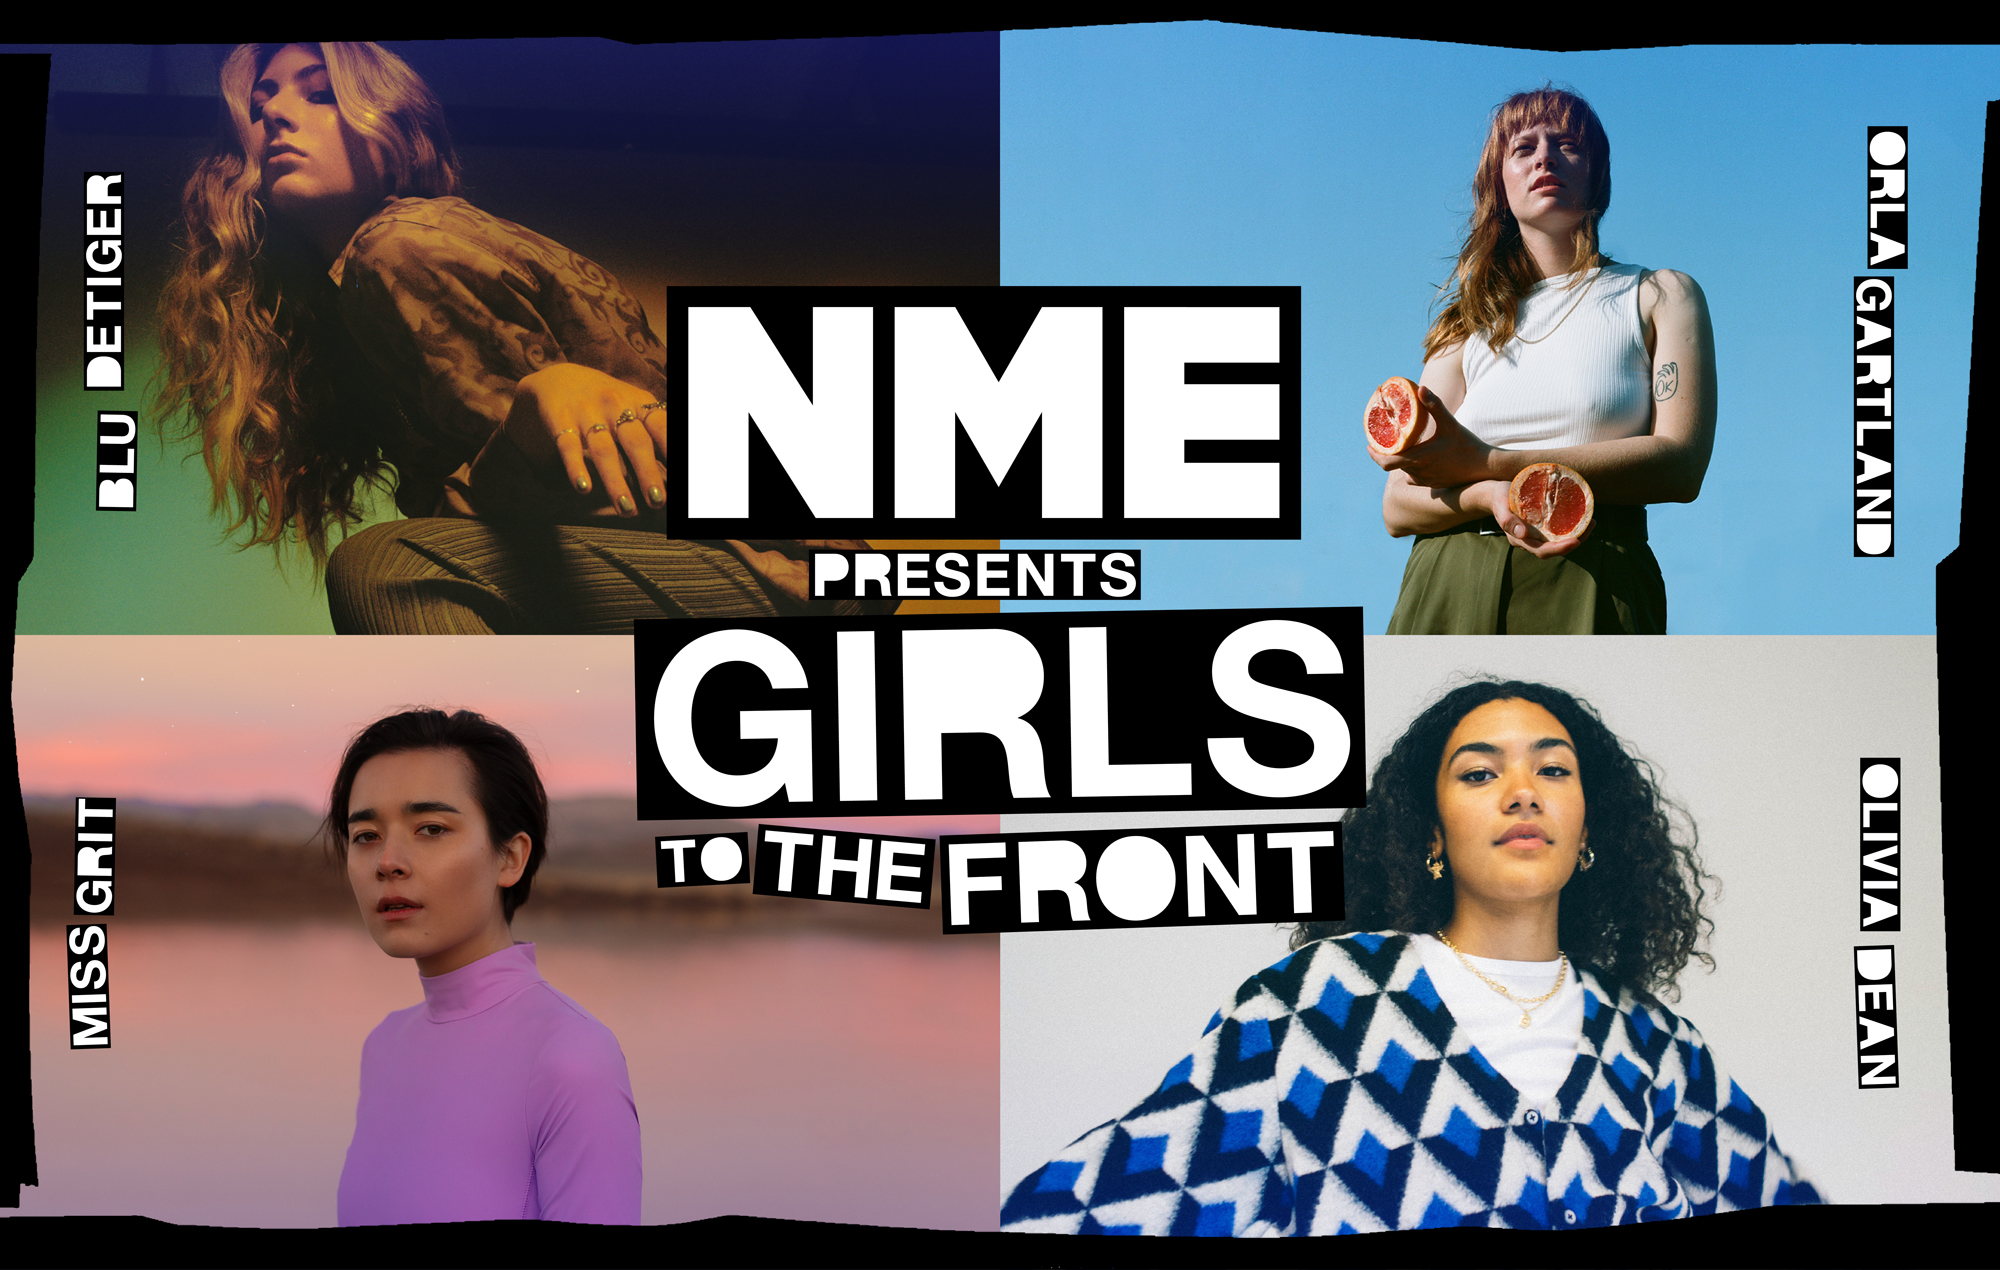 Watch's NME's Girls To The Front International Women's Day online show